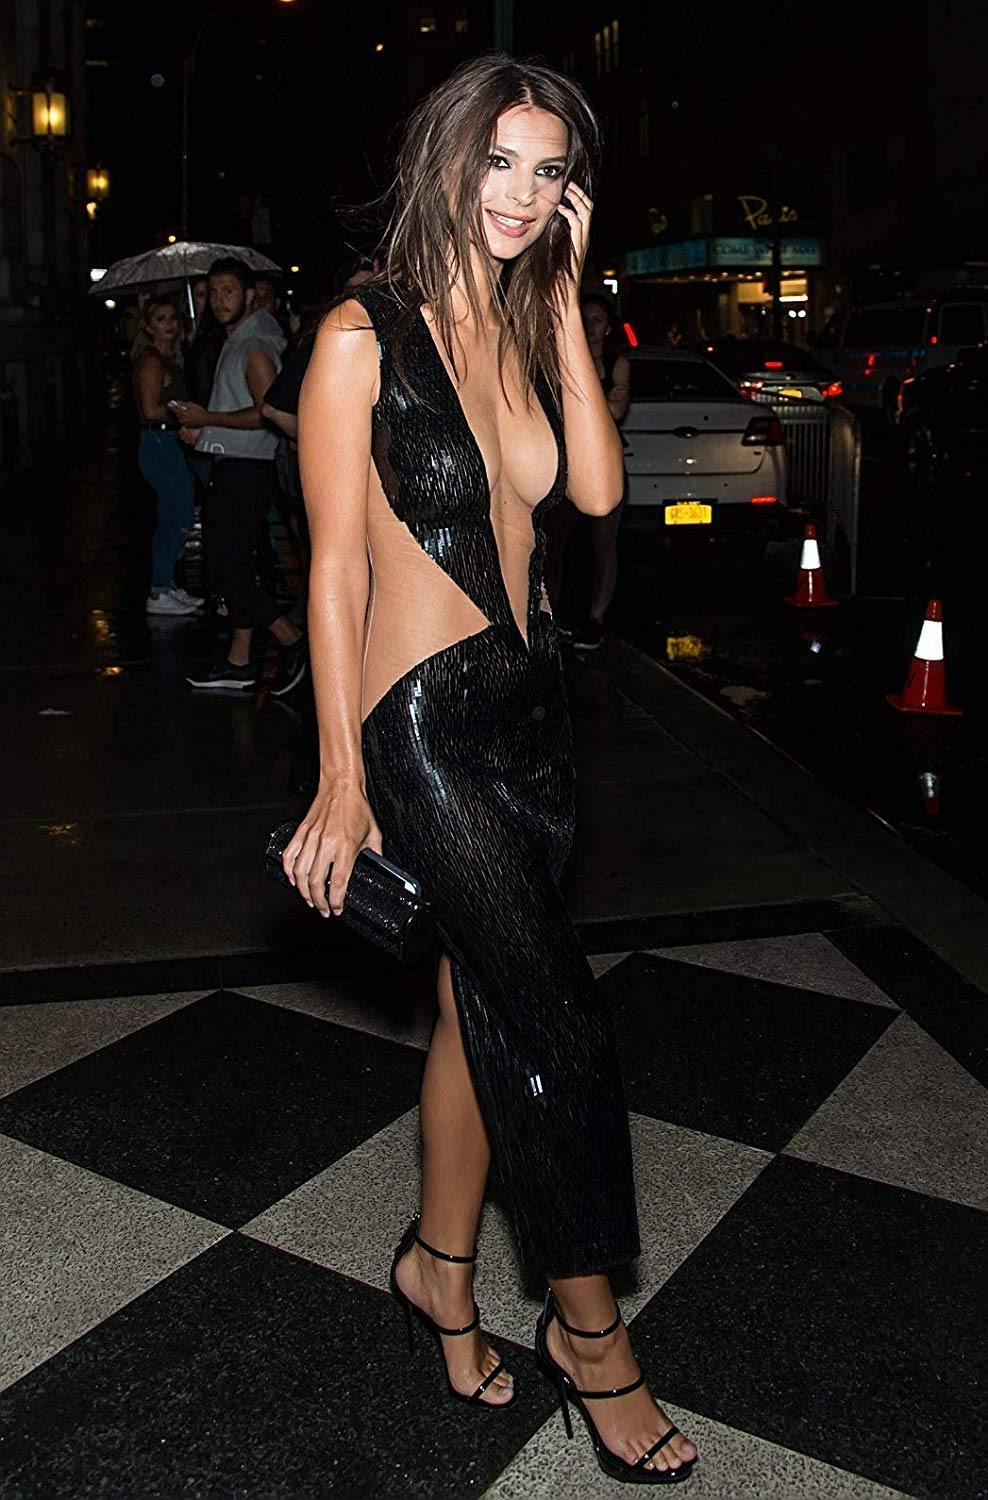 Emily Ratajkowski Black Night Dress - Emily Ratajkowski Net Worth, Pics, Wallpapers, Career and Biography